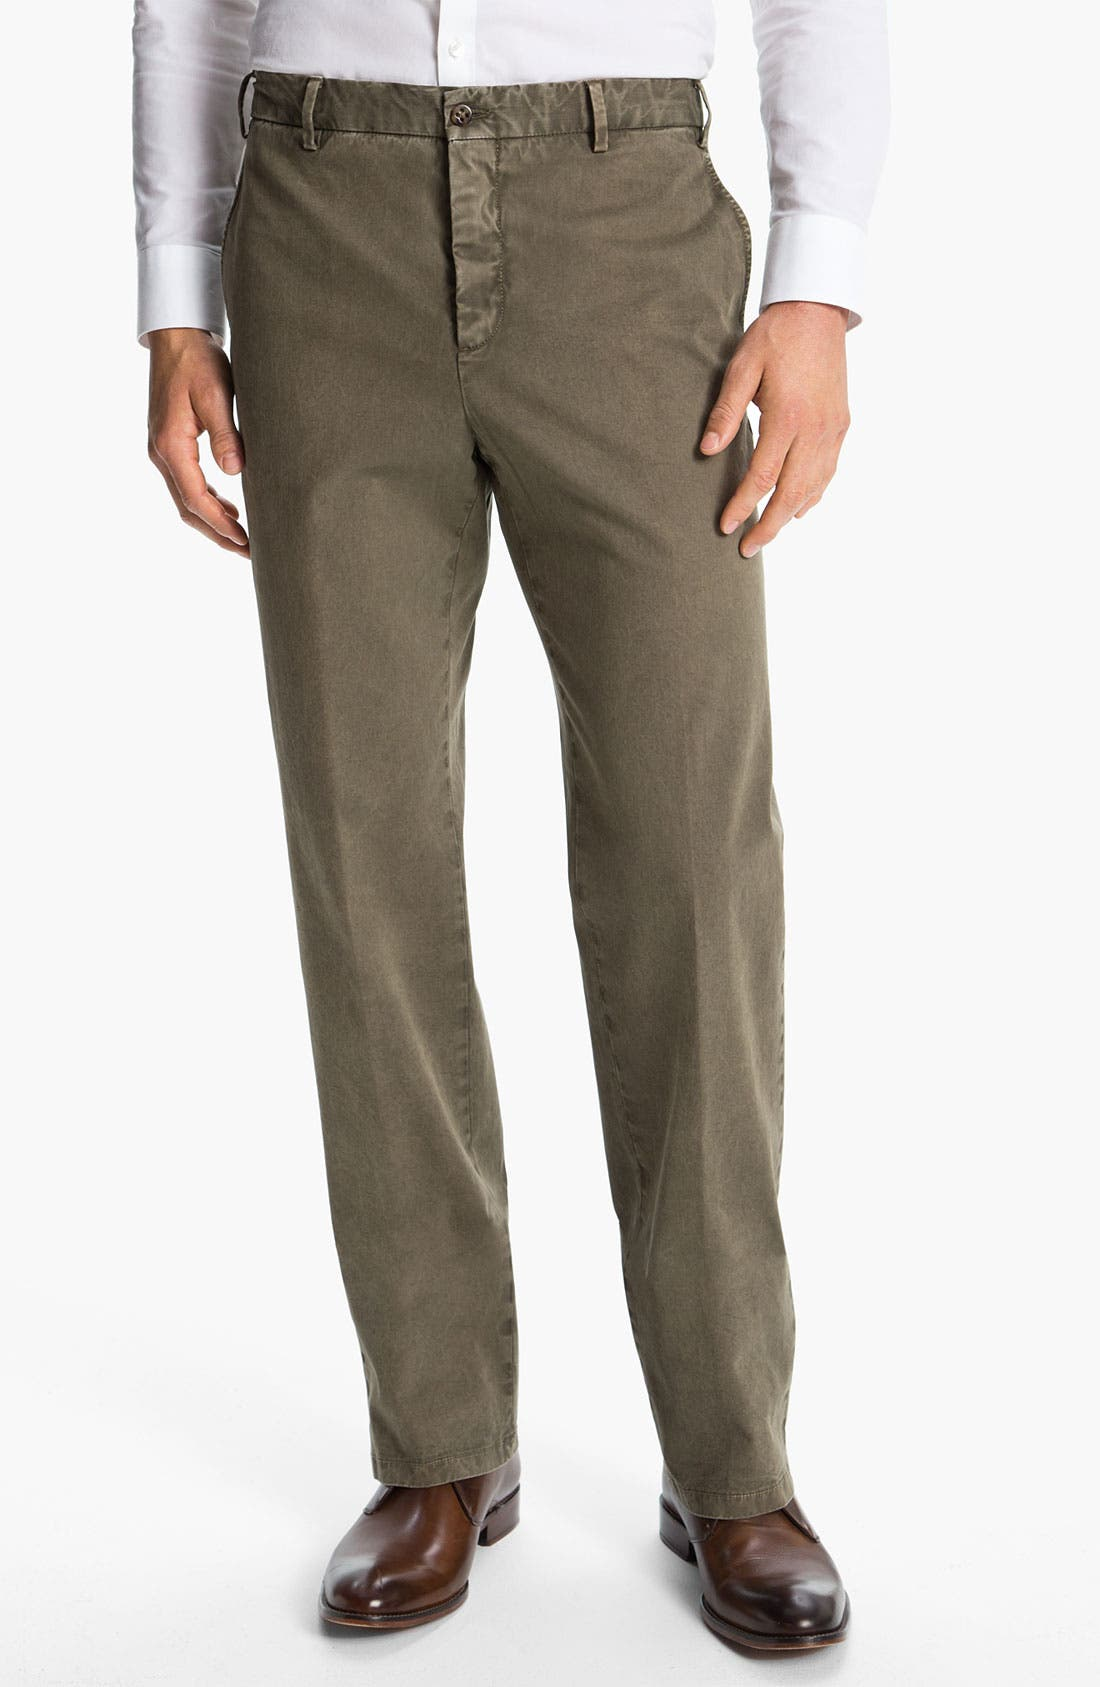 Main Image - Zanella 'Devon' Flat Front Cotton Trousers